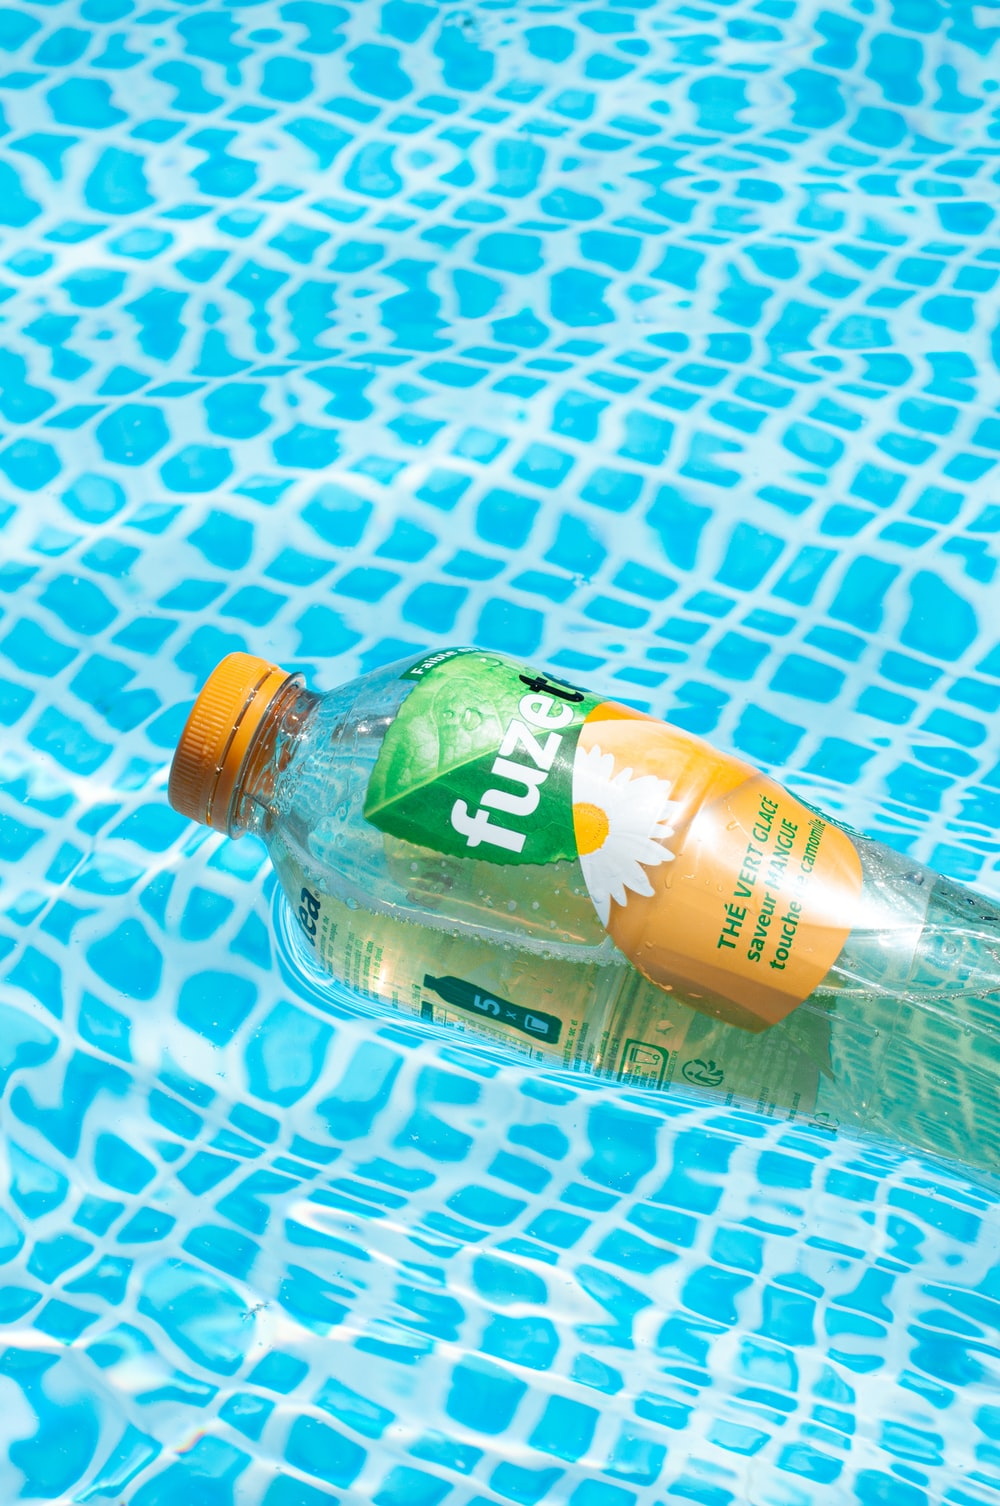 green labeled plastic bottle on blue and white polka dot textile